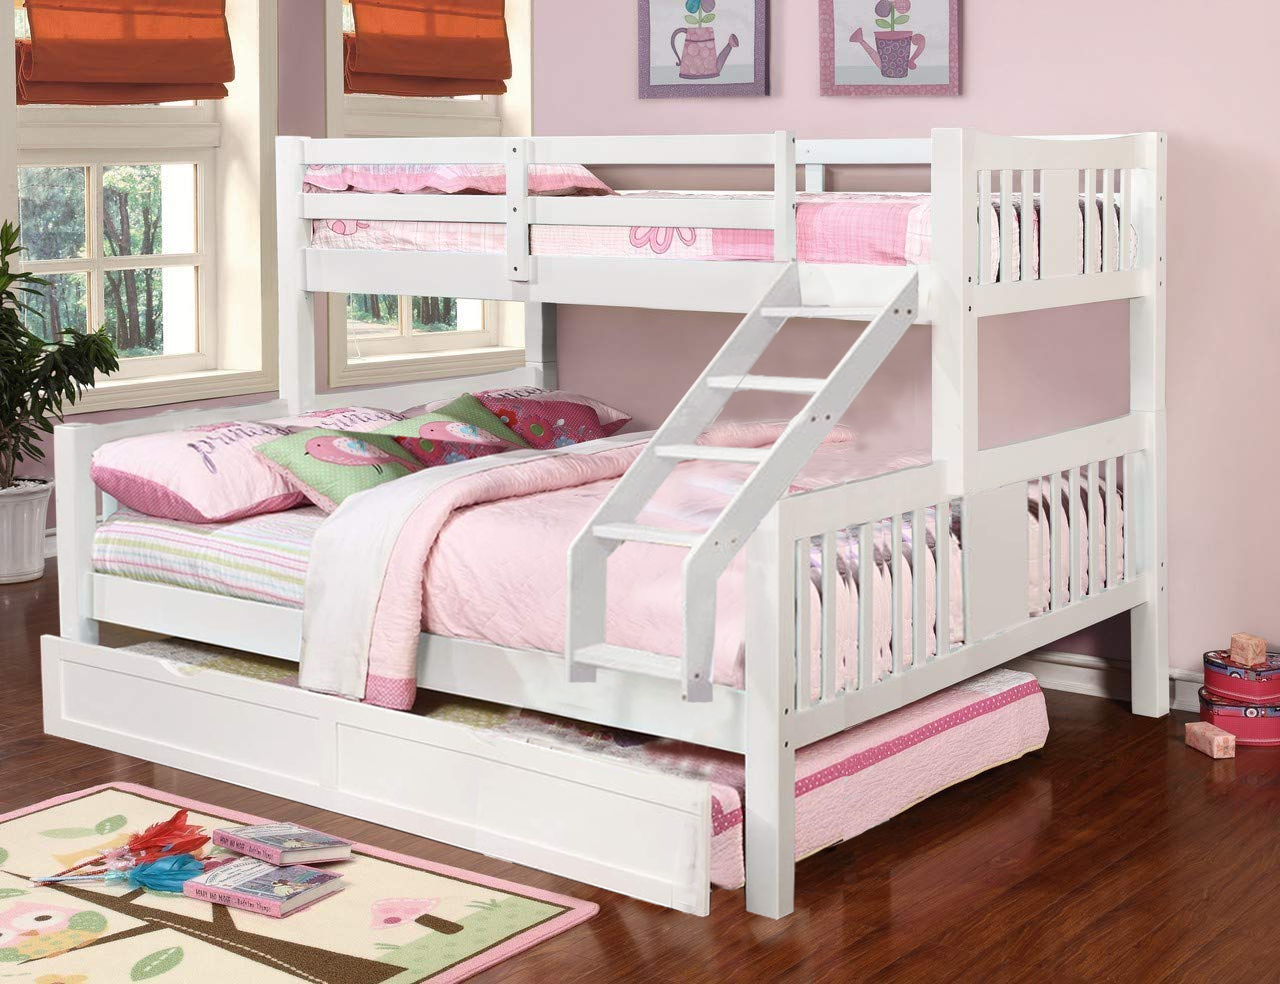 Types Of Bunk Beds For Kids